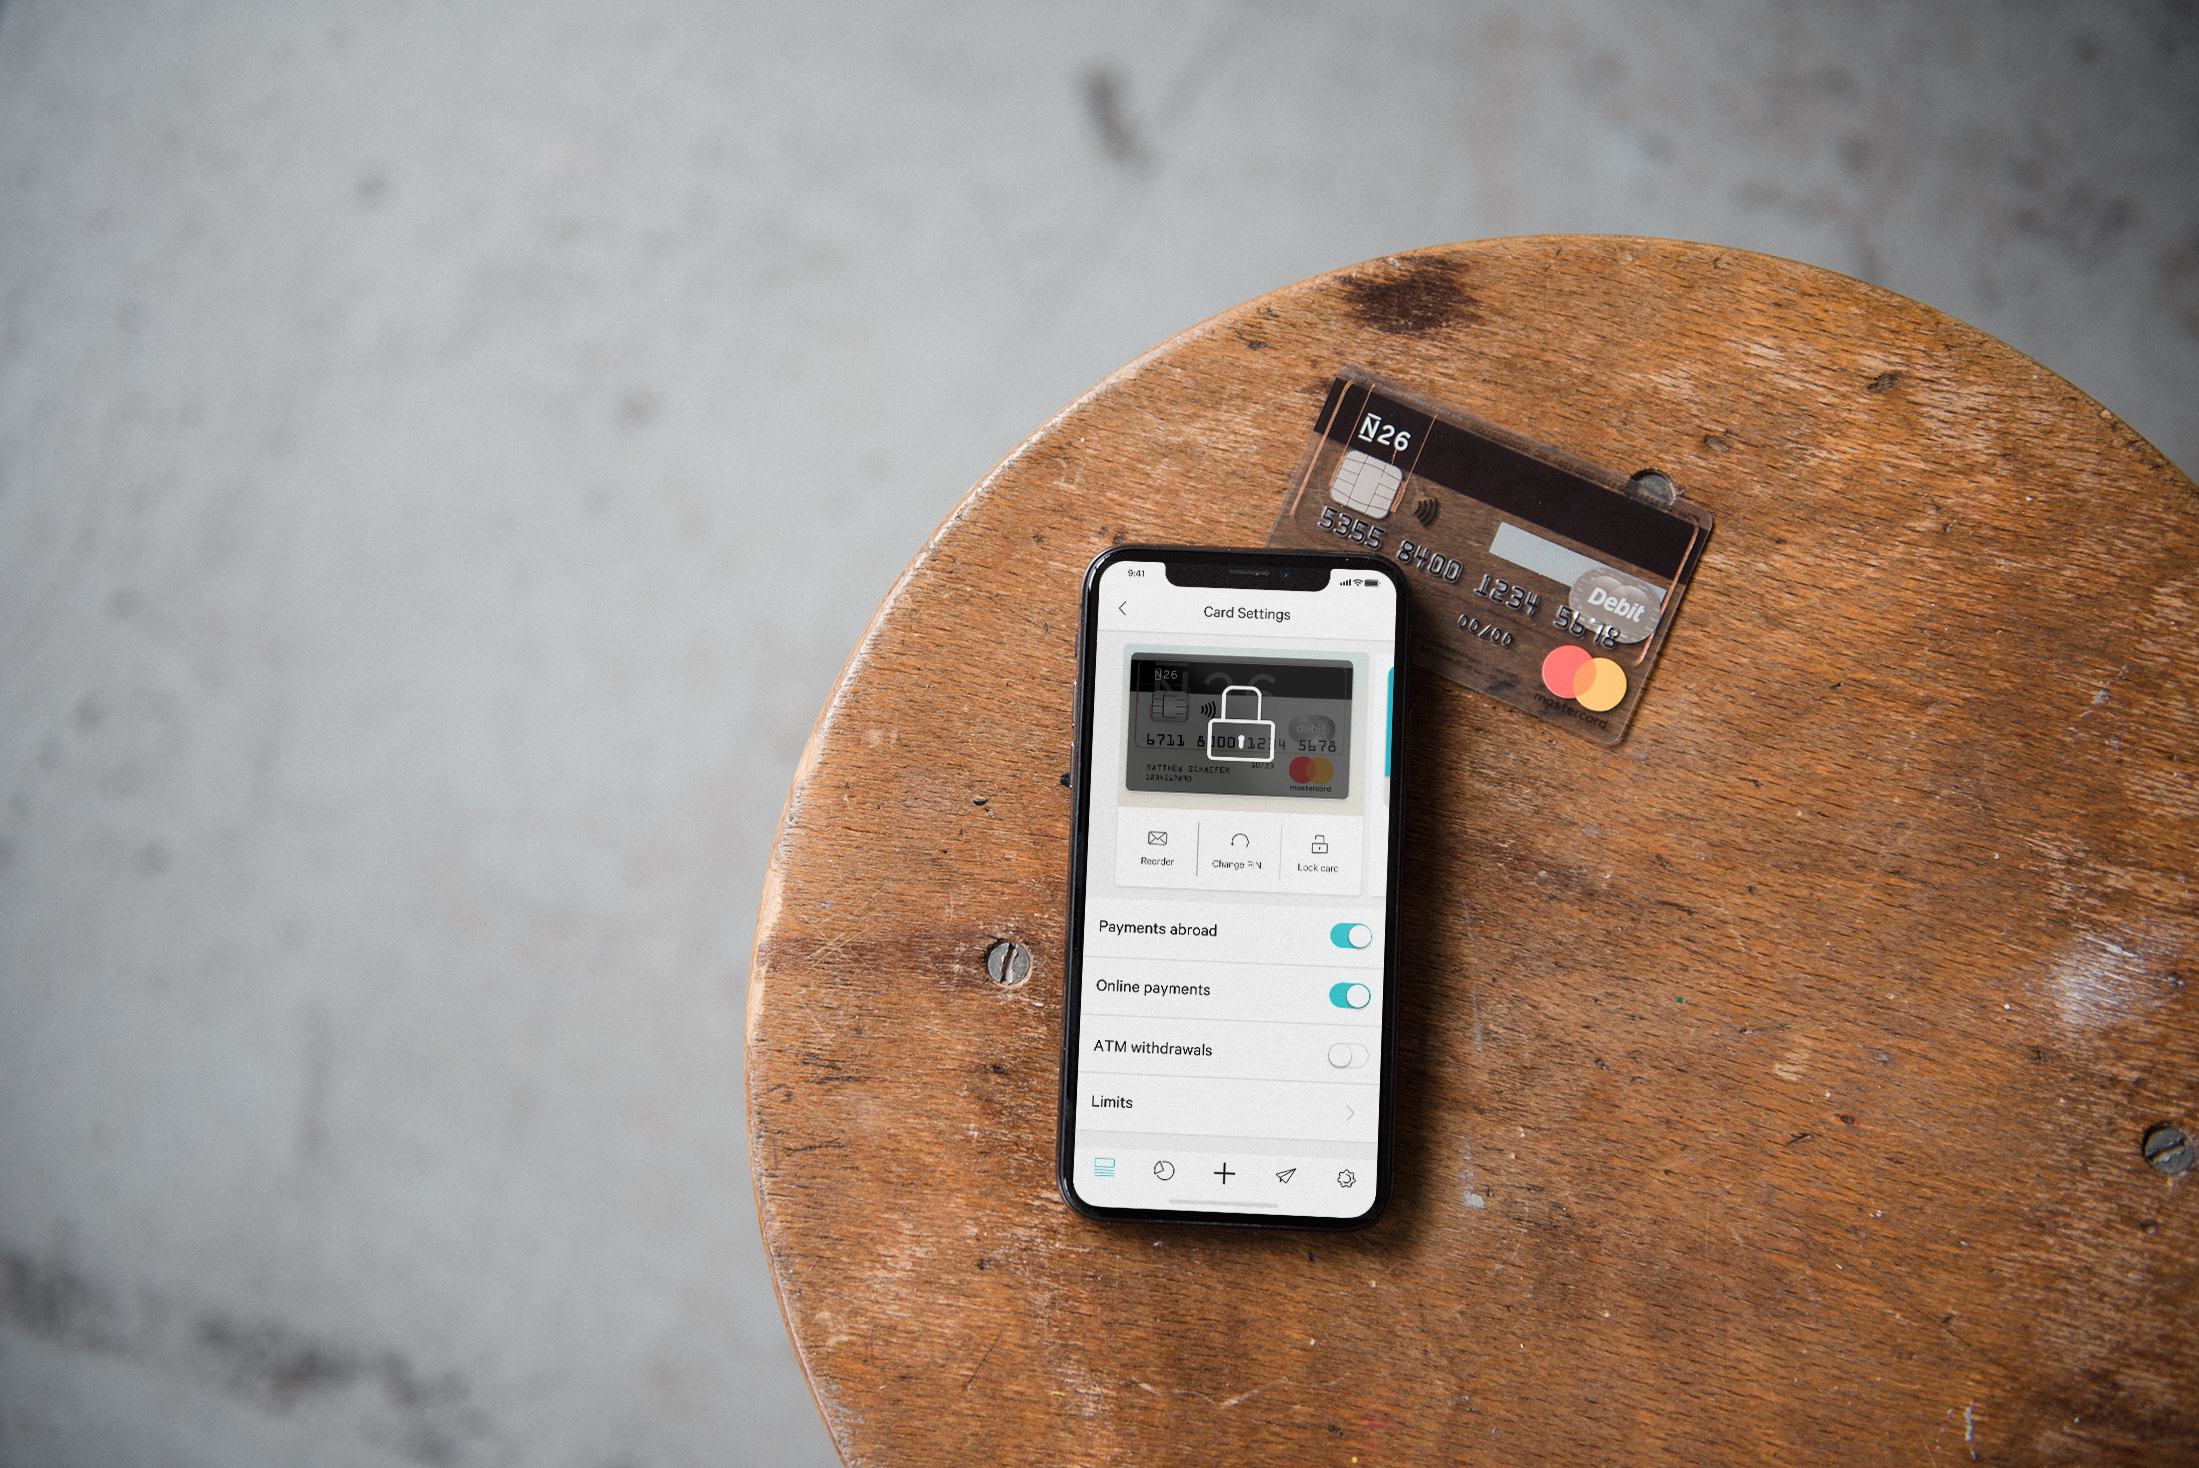 N26 Press Image with a phone showing the card settings section of the N26 app with a bank account card in the background. Both things are laying on a wooden table